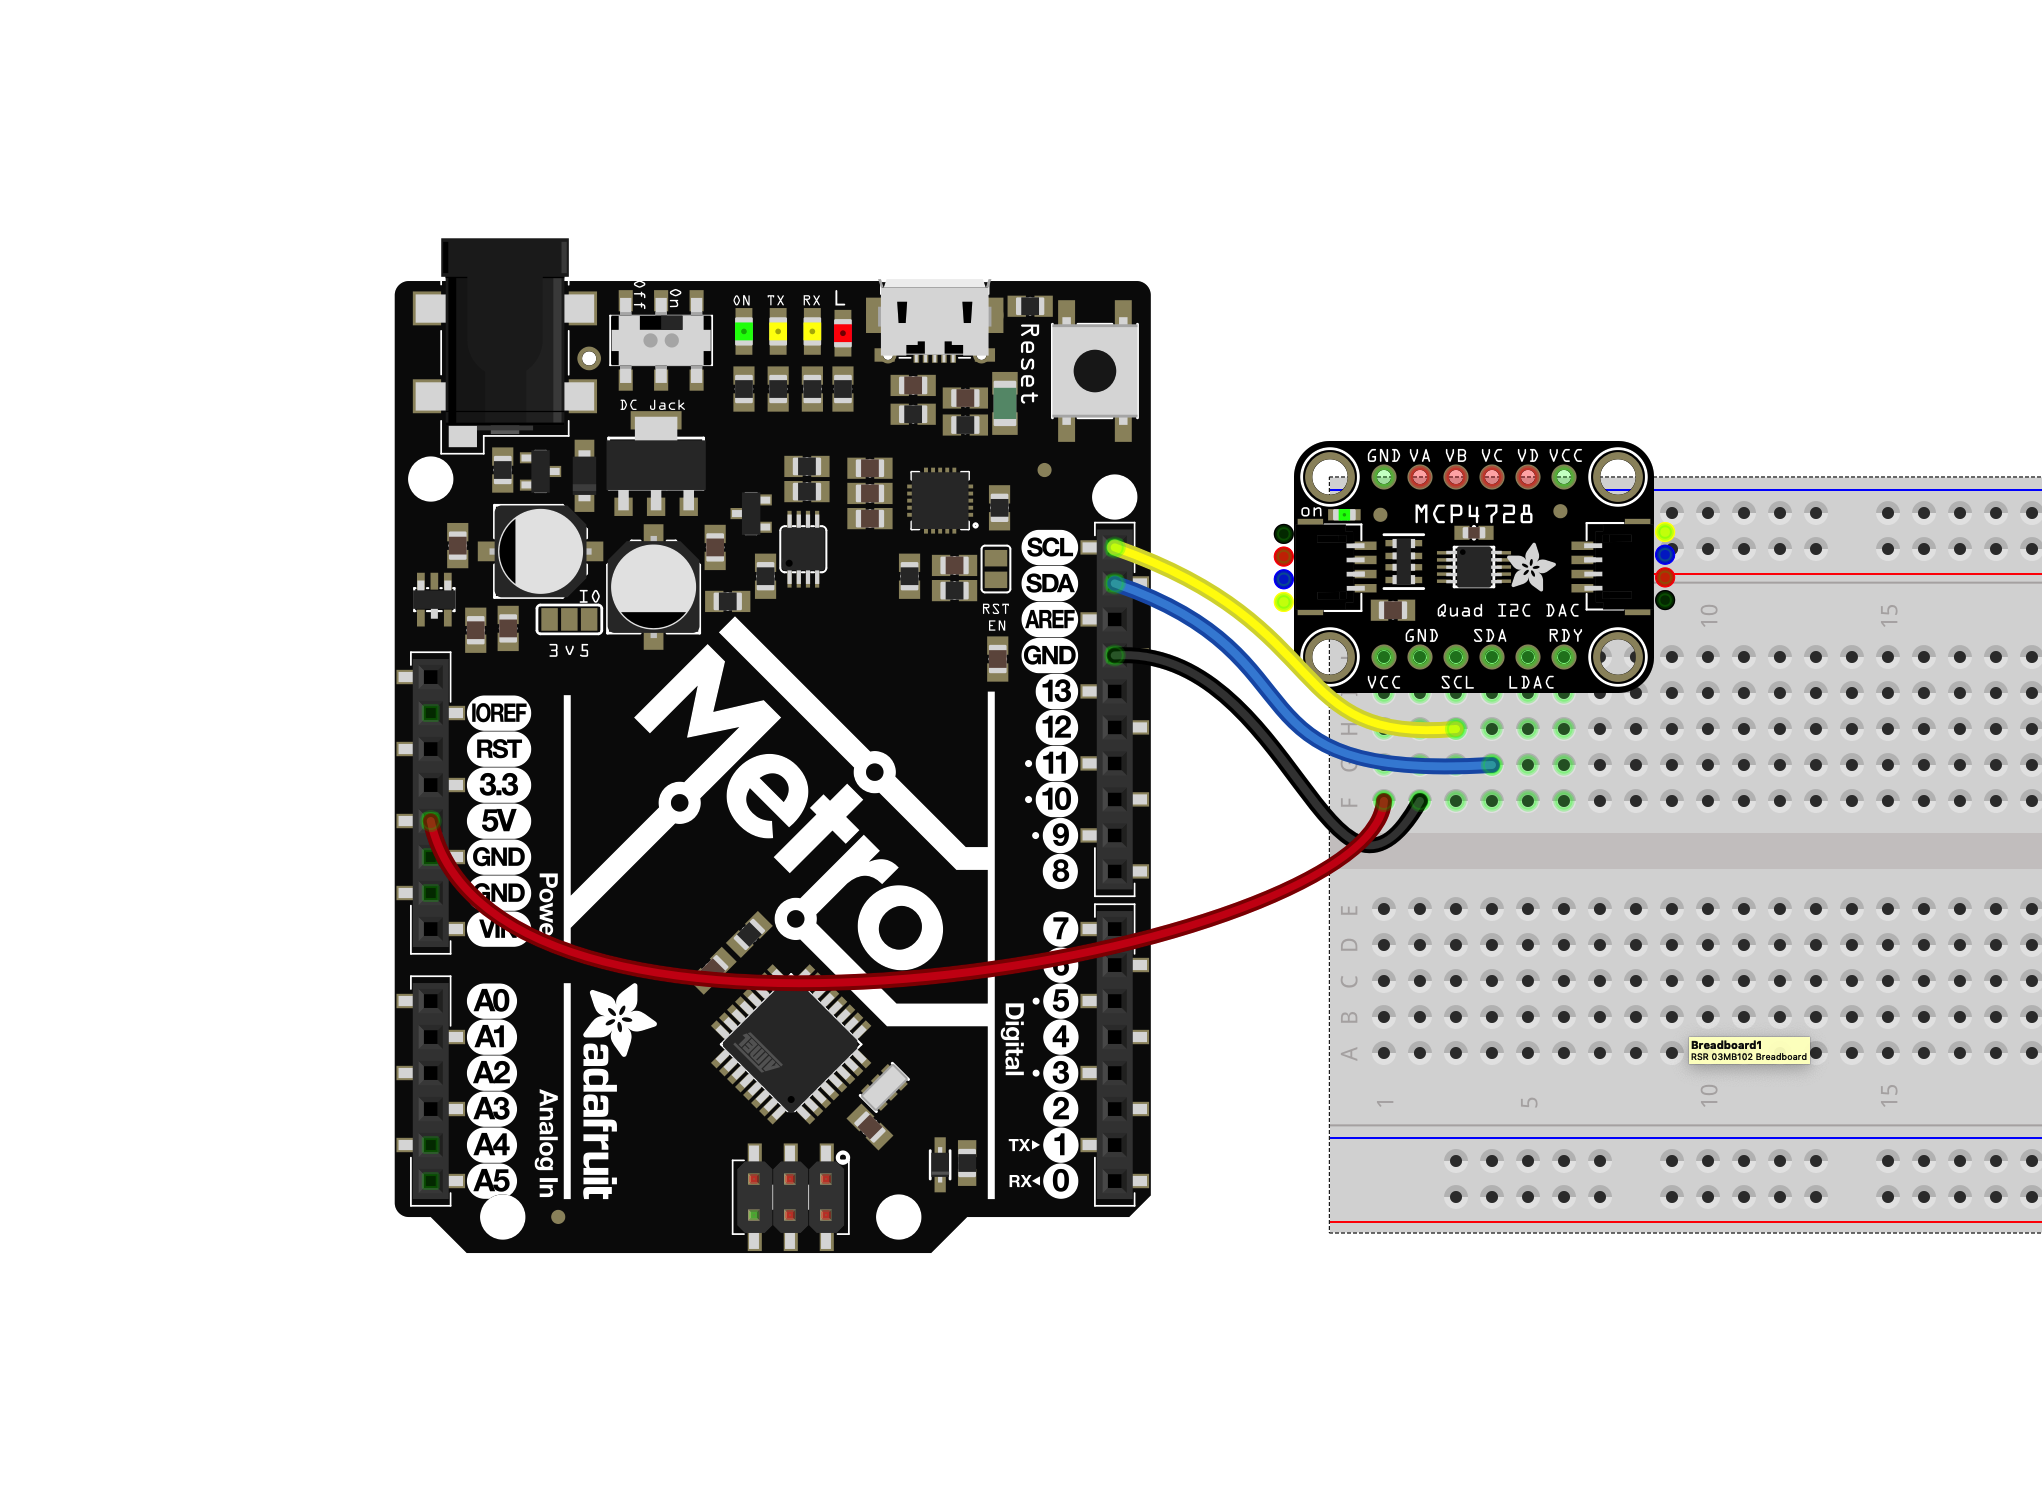 adafruit_products_arduino_wiring_bb.png